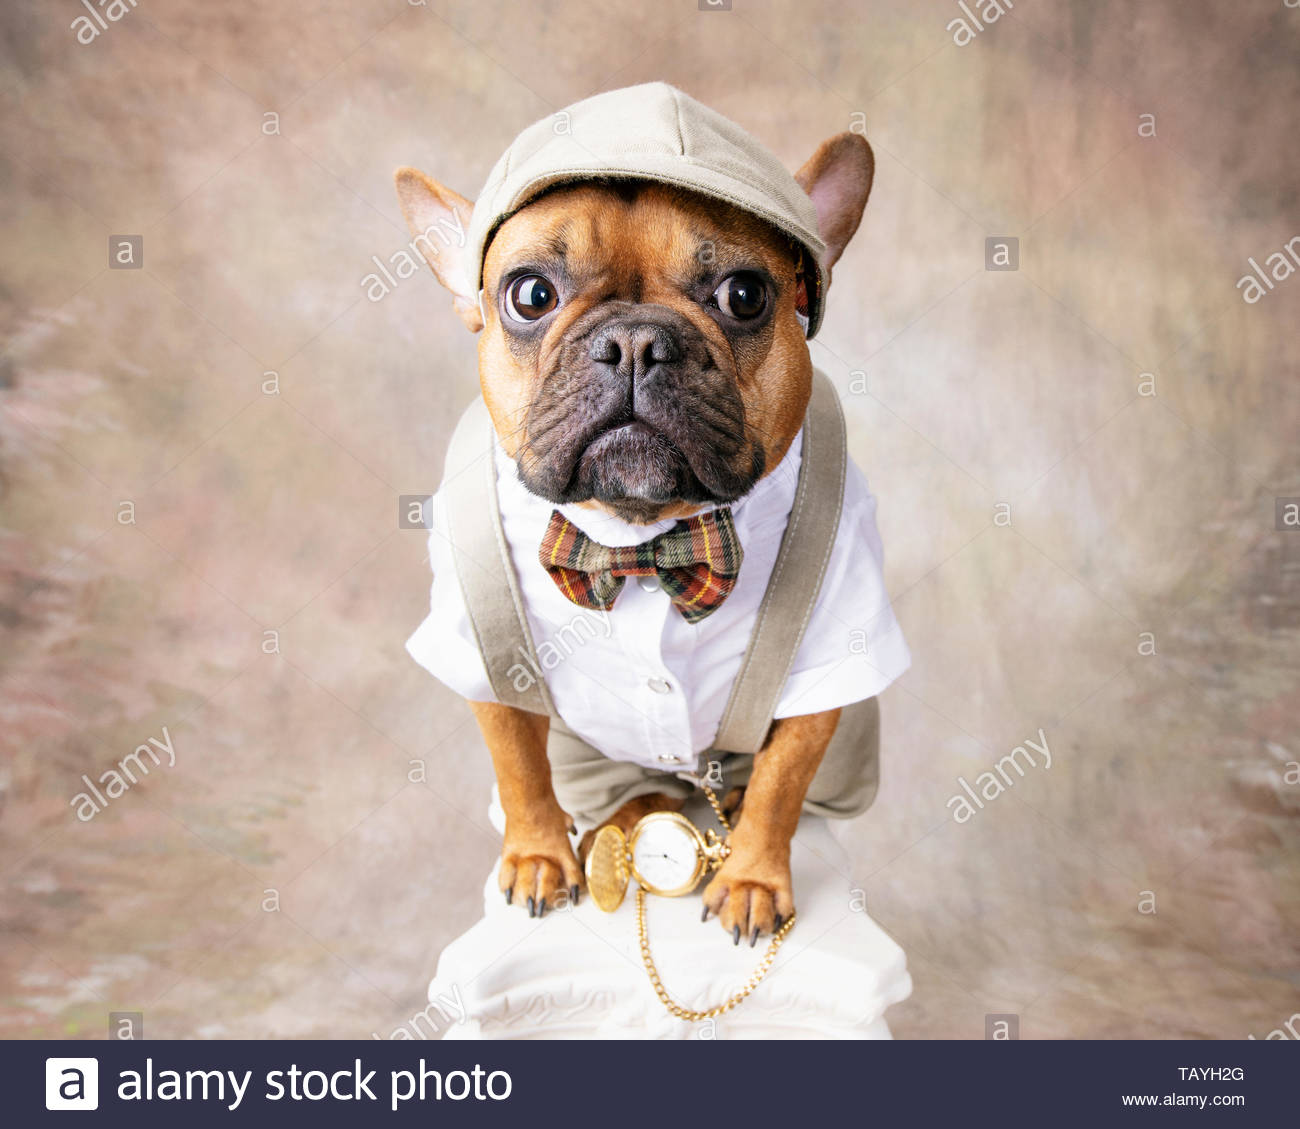 Red fawn french bulldog dressed in knickers, suspenders, bowtie, cap and pocket watch on white pedestal with swirly tan and white backdrop. - Stock Image